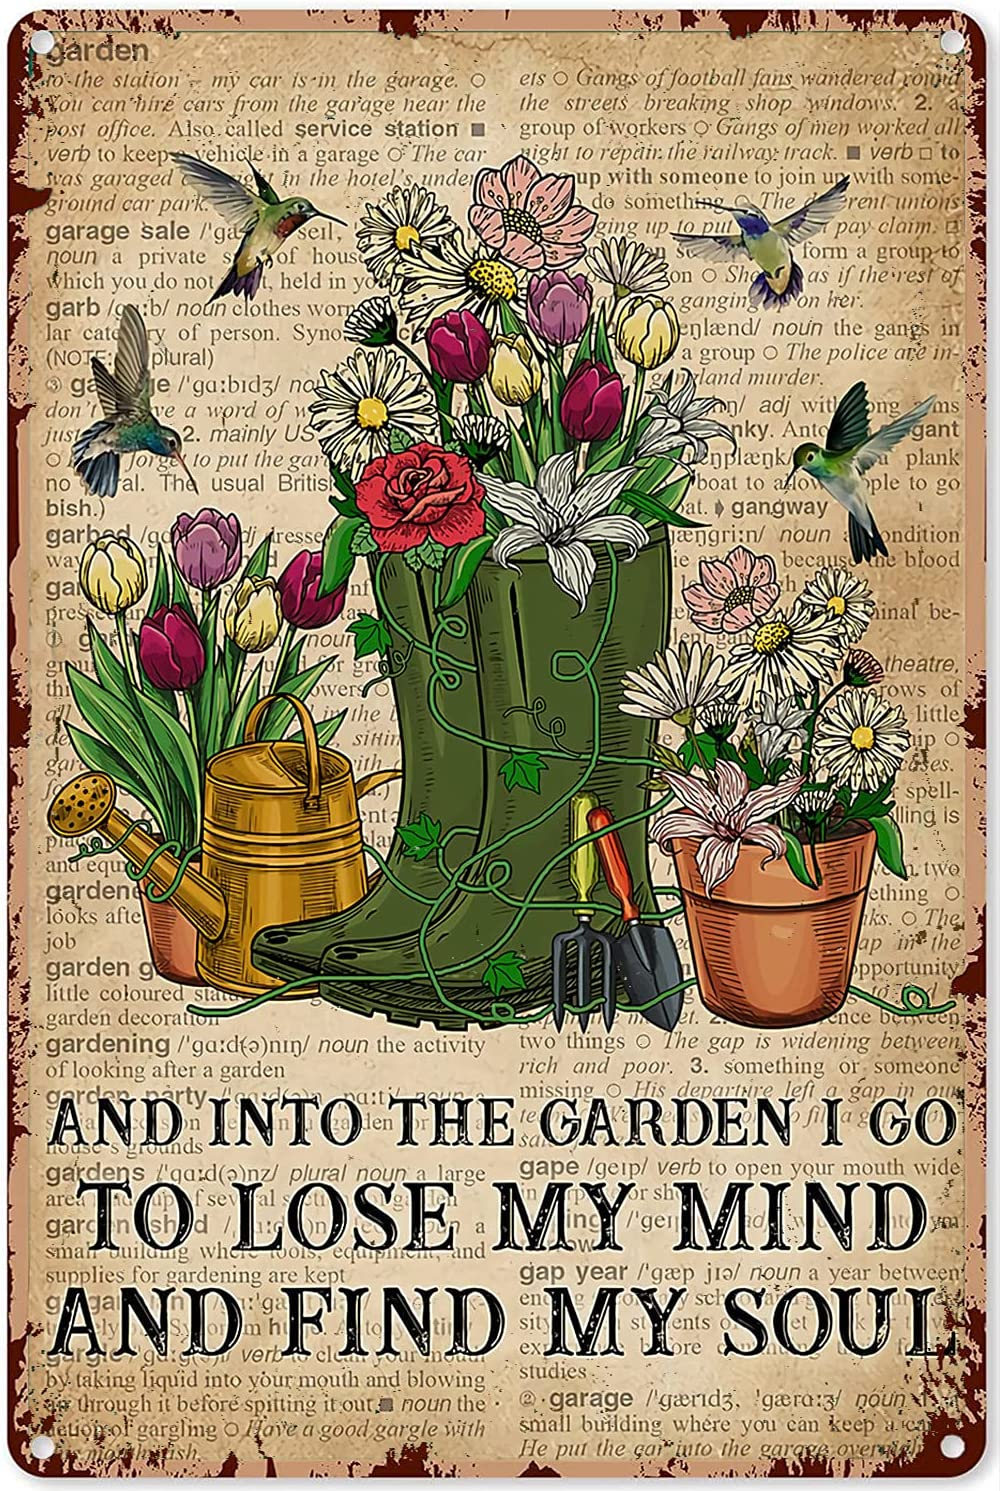 Garden Tin Signs Vintage and Into The Garden I Go to Lose My Mind and Find My Soul Tin Sign Decoration Vintage Chic Metal Poster Wall Decor Art Gift for Home Outside Farm Garden Garage Outdoor 12x8 inch